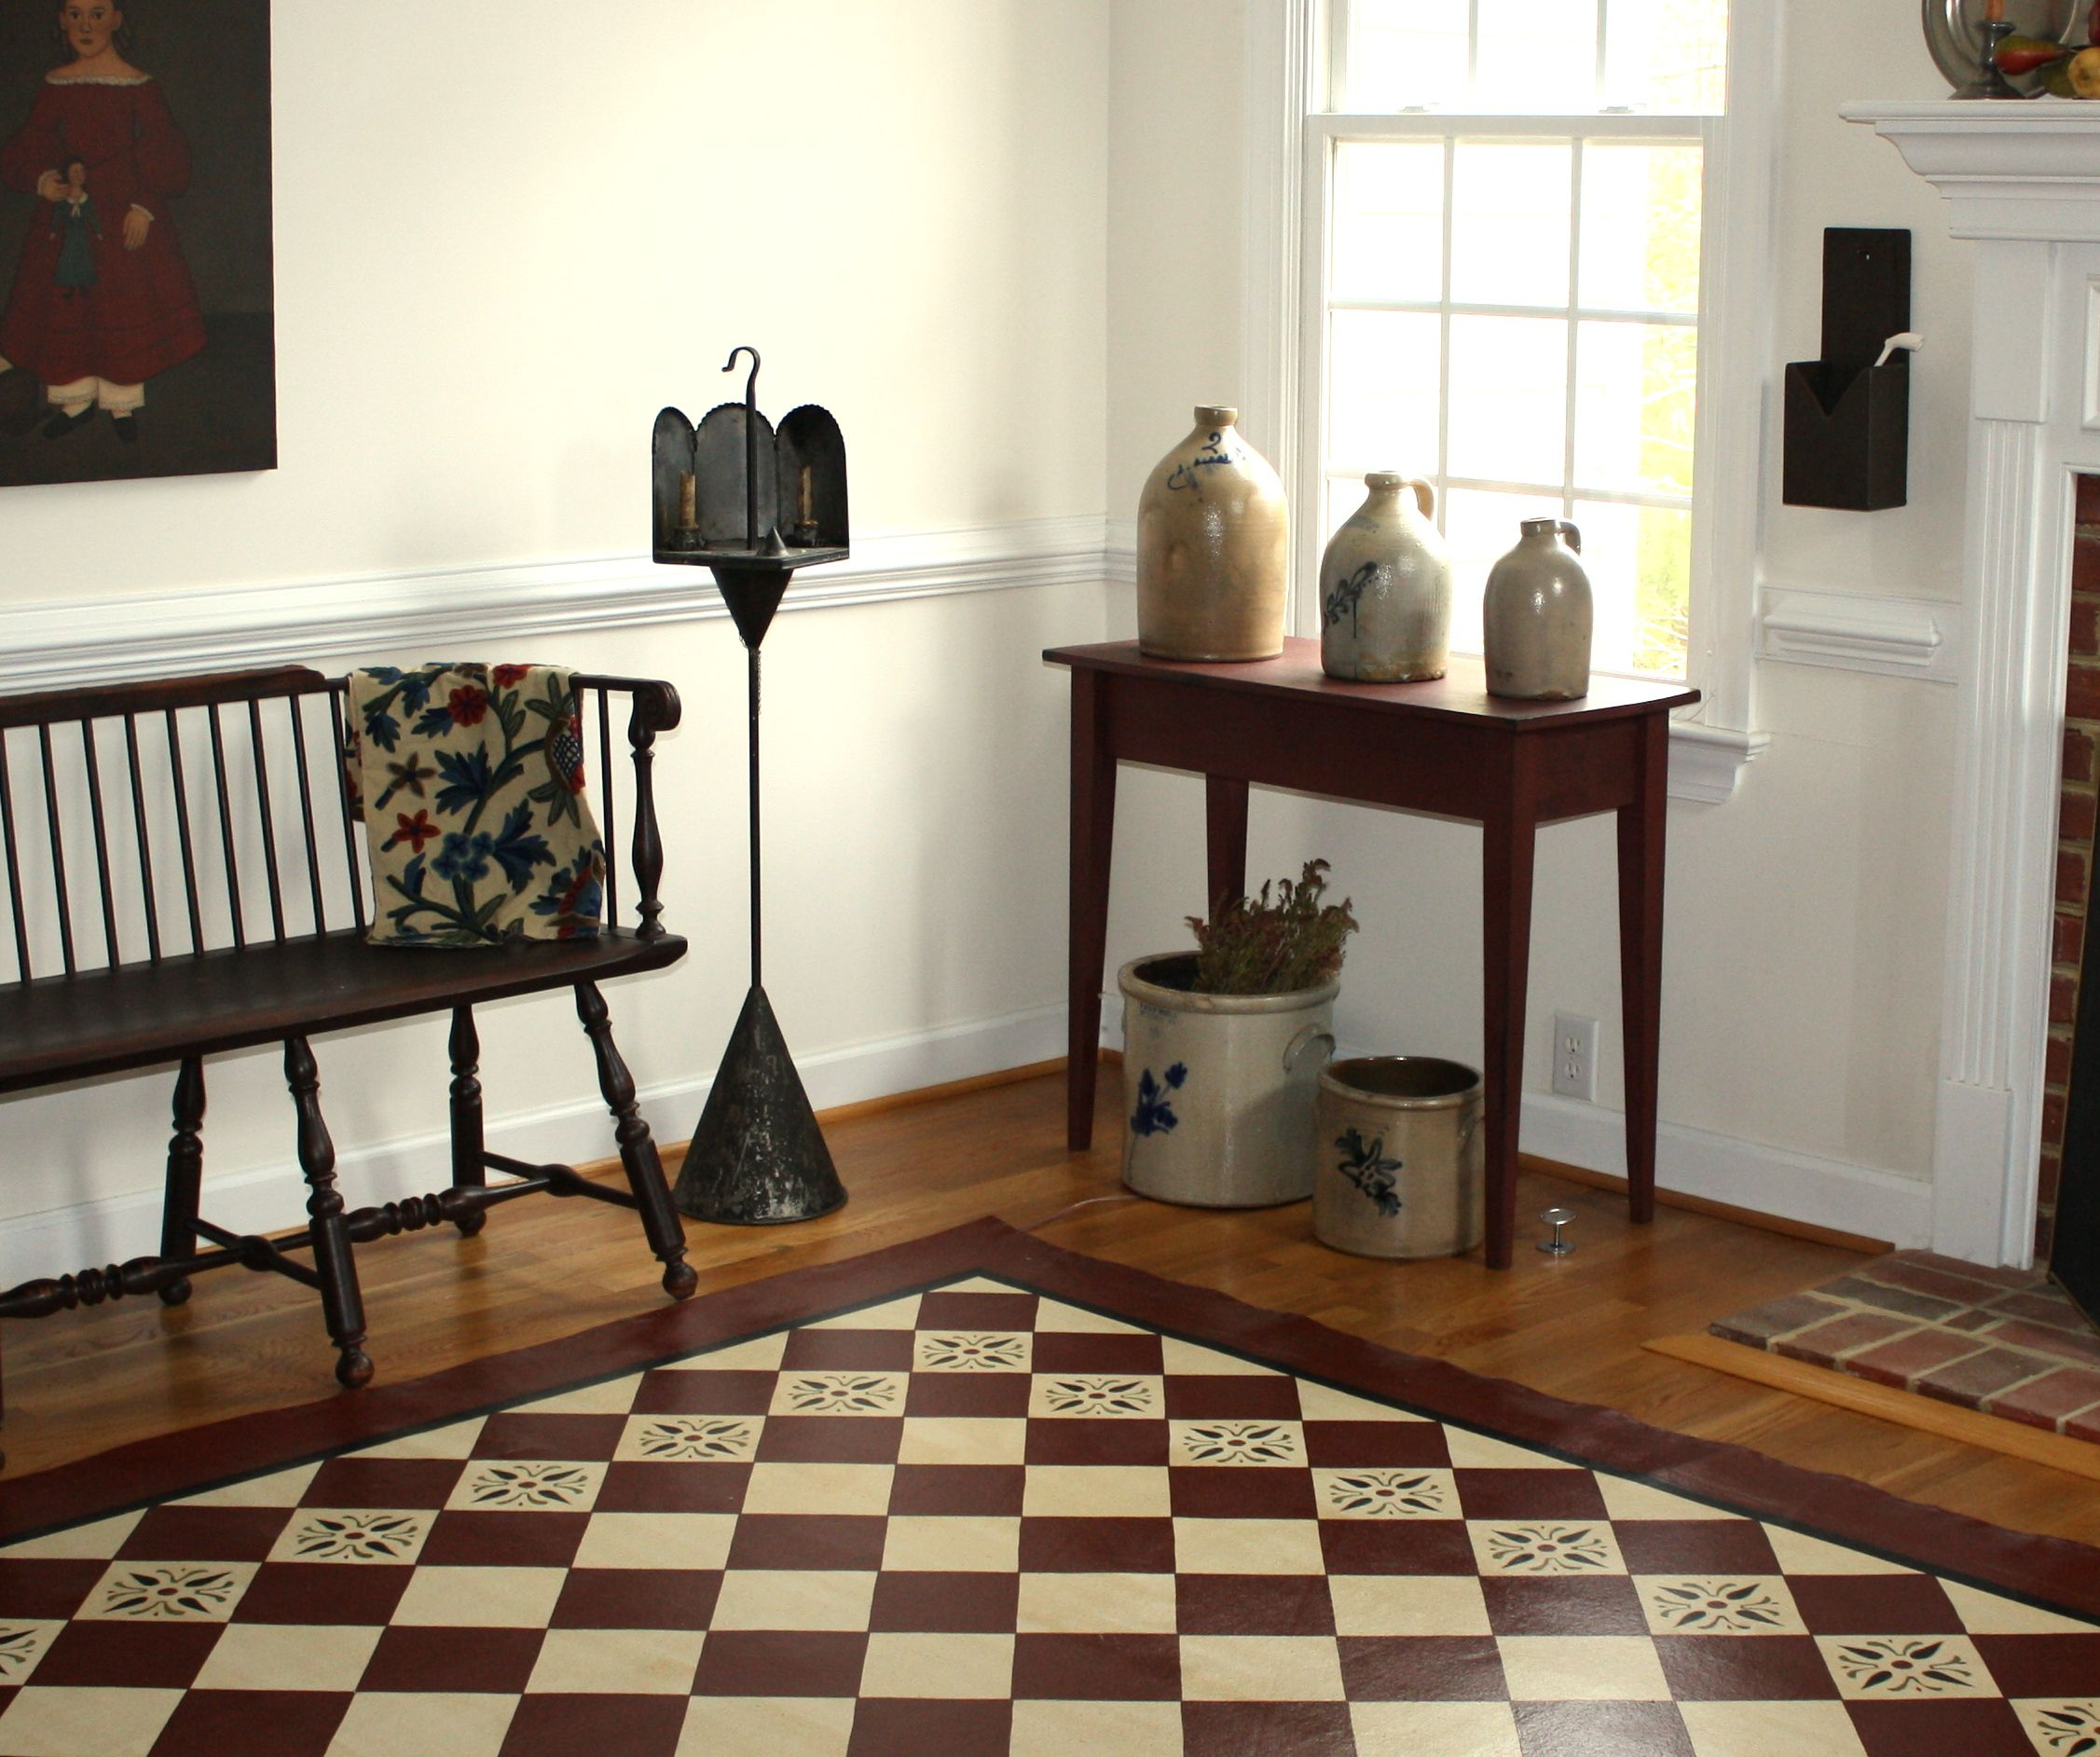 American Colonial Interiors: EARLY AMERICAN Stenciled Walls